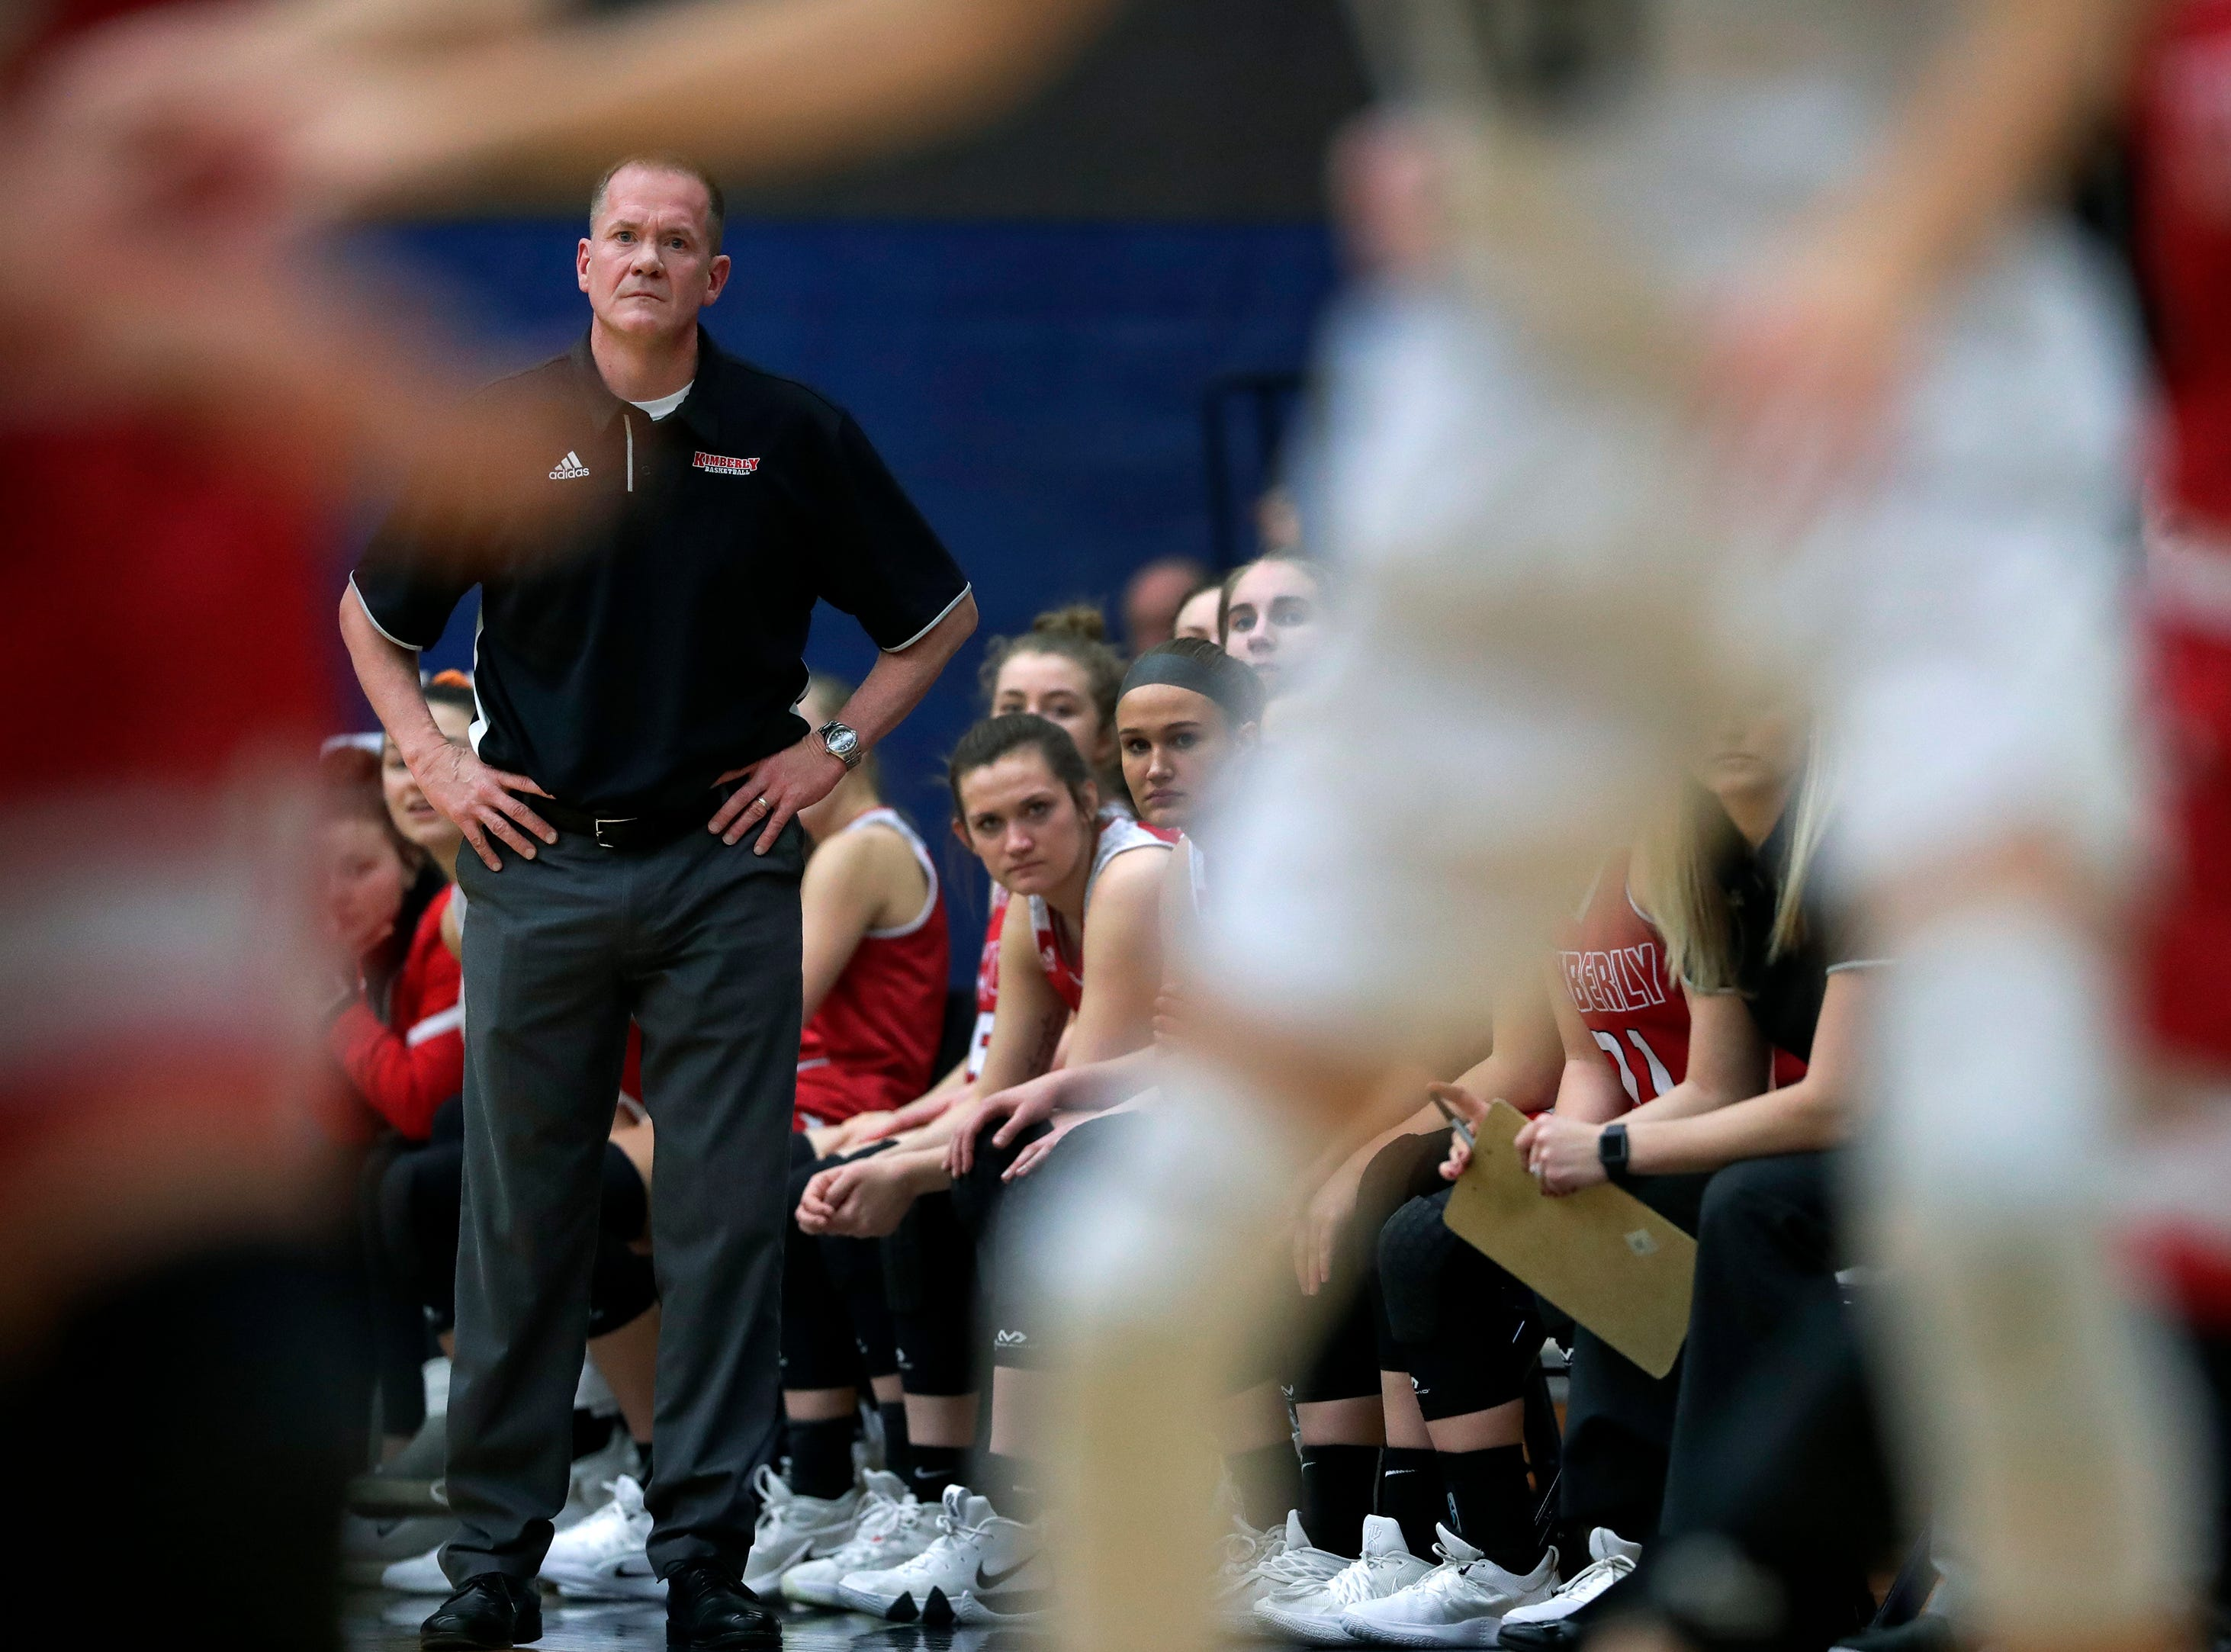 Kimberly High School's coach Troy Cullen keeps his eyes on the action against Appleton North High School during their girls basketball game Tuesday, January 8, 2019, in Appleton, Wis. 